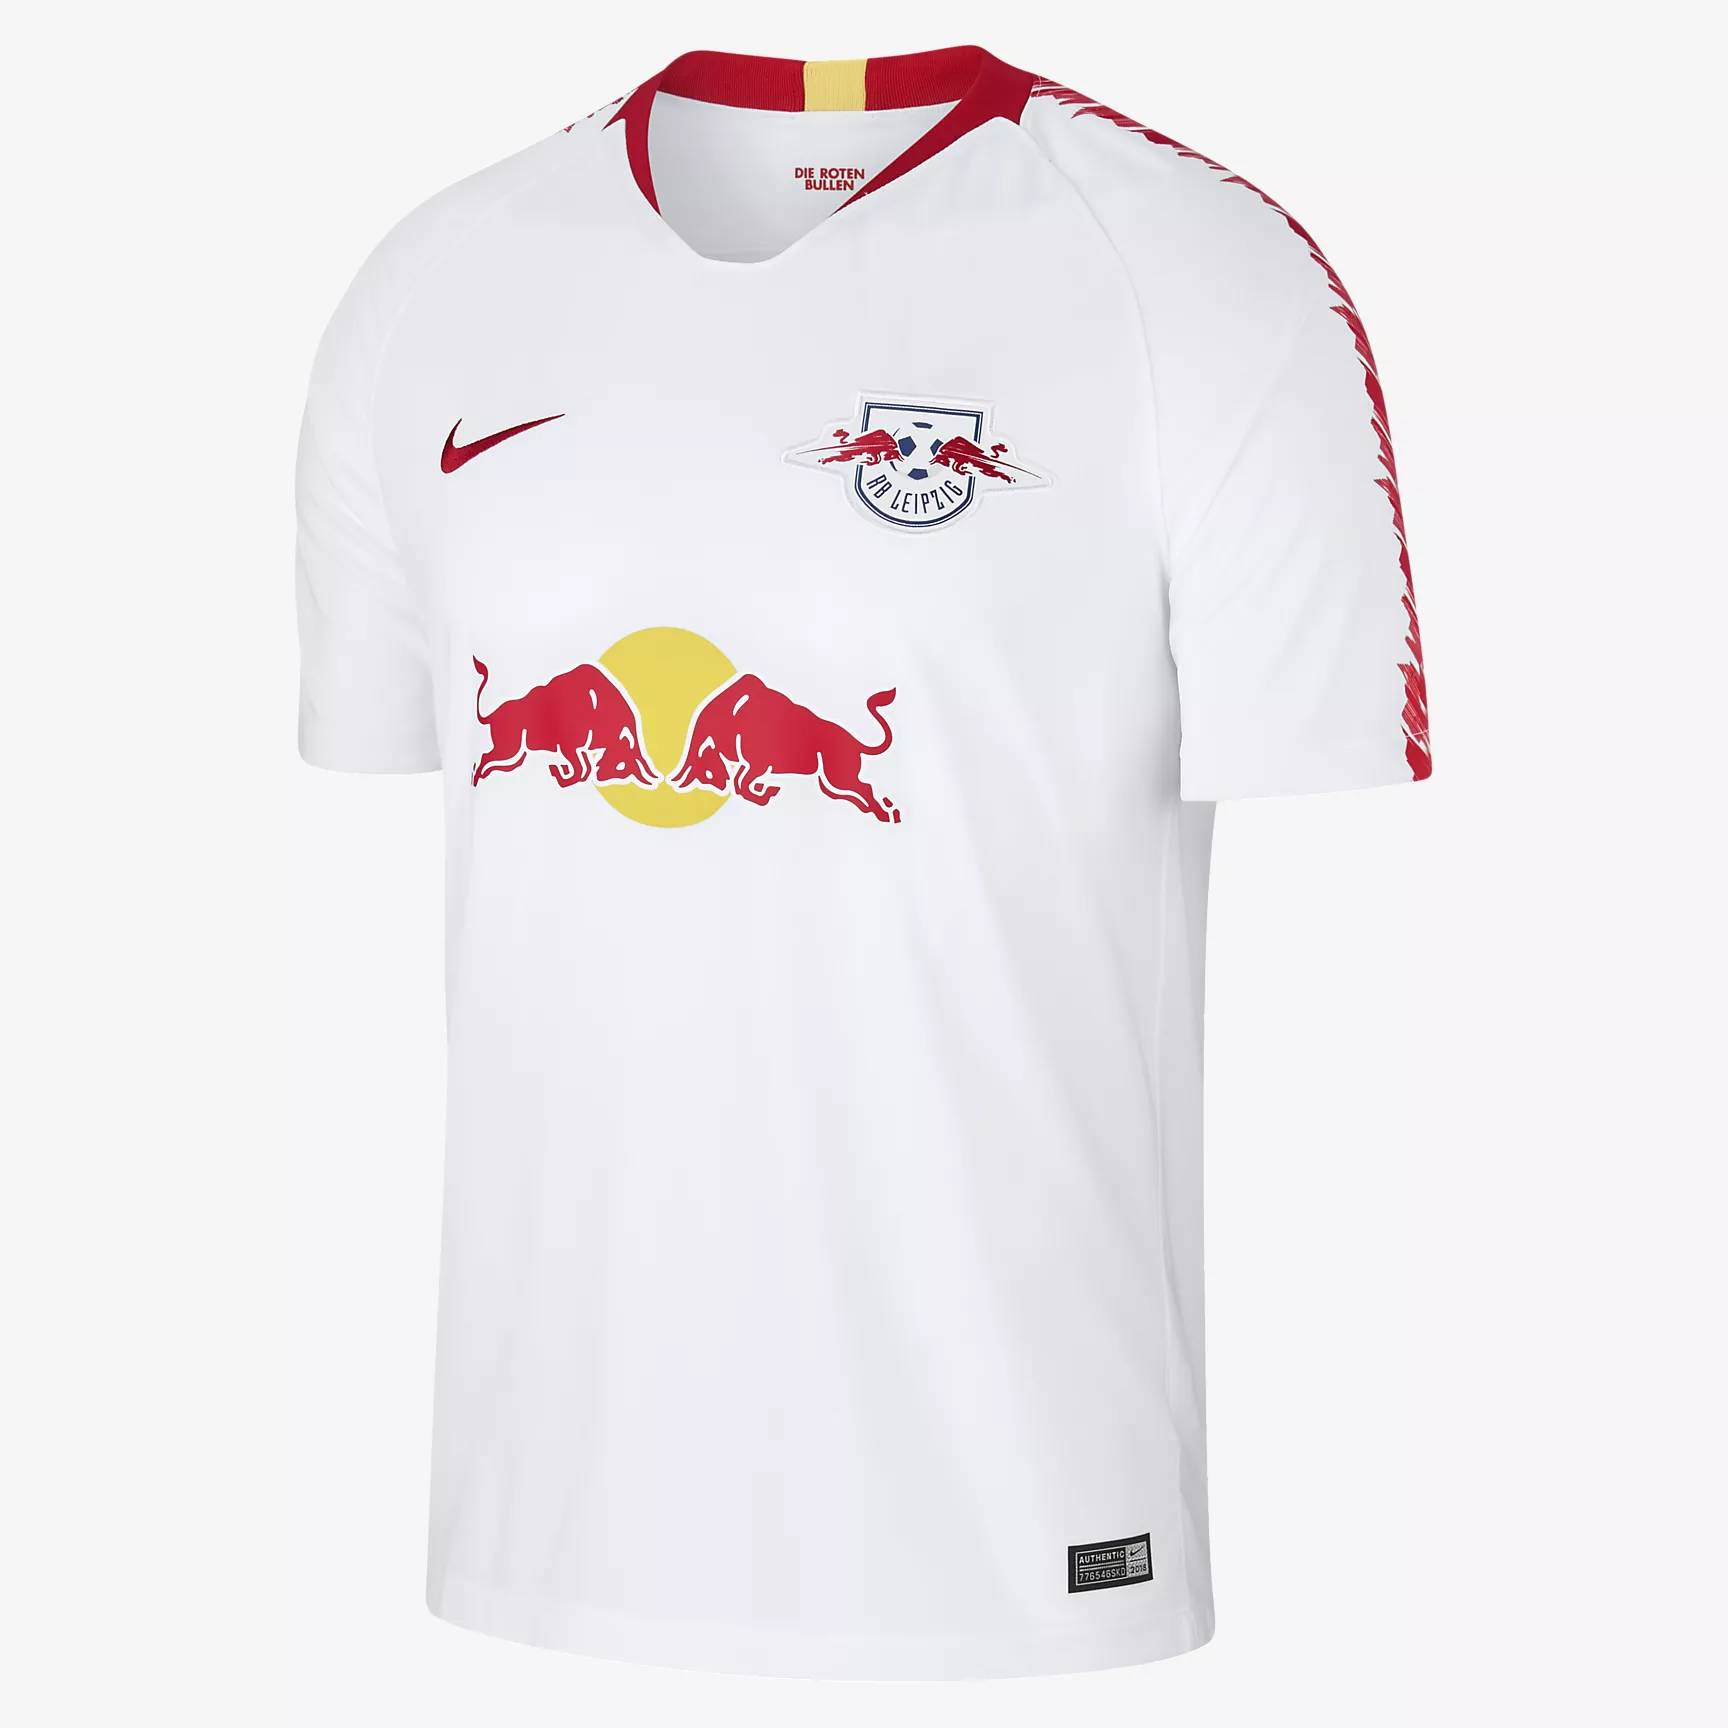 They play their first game of the 2018 19 campaign on the 26th August  against Dortmund. Manager Ralf Rangnick will hope his team get off to a  flying start. b6c9120b6